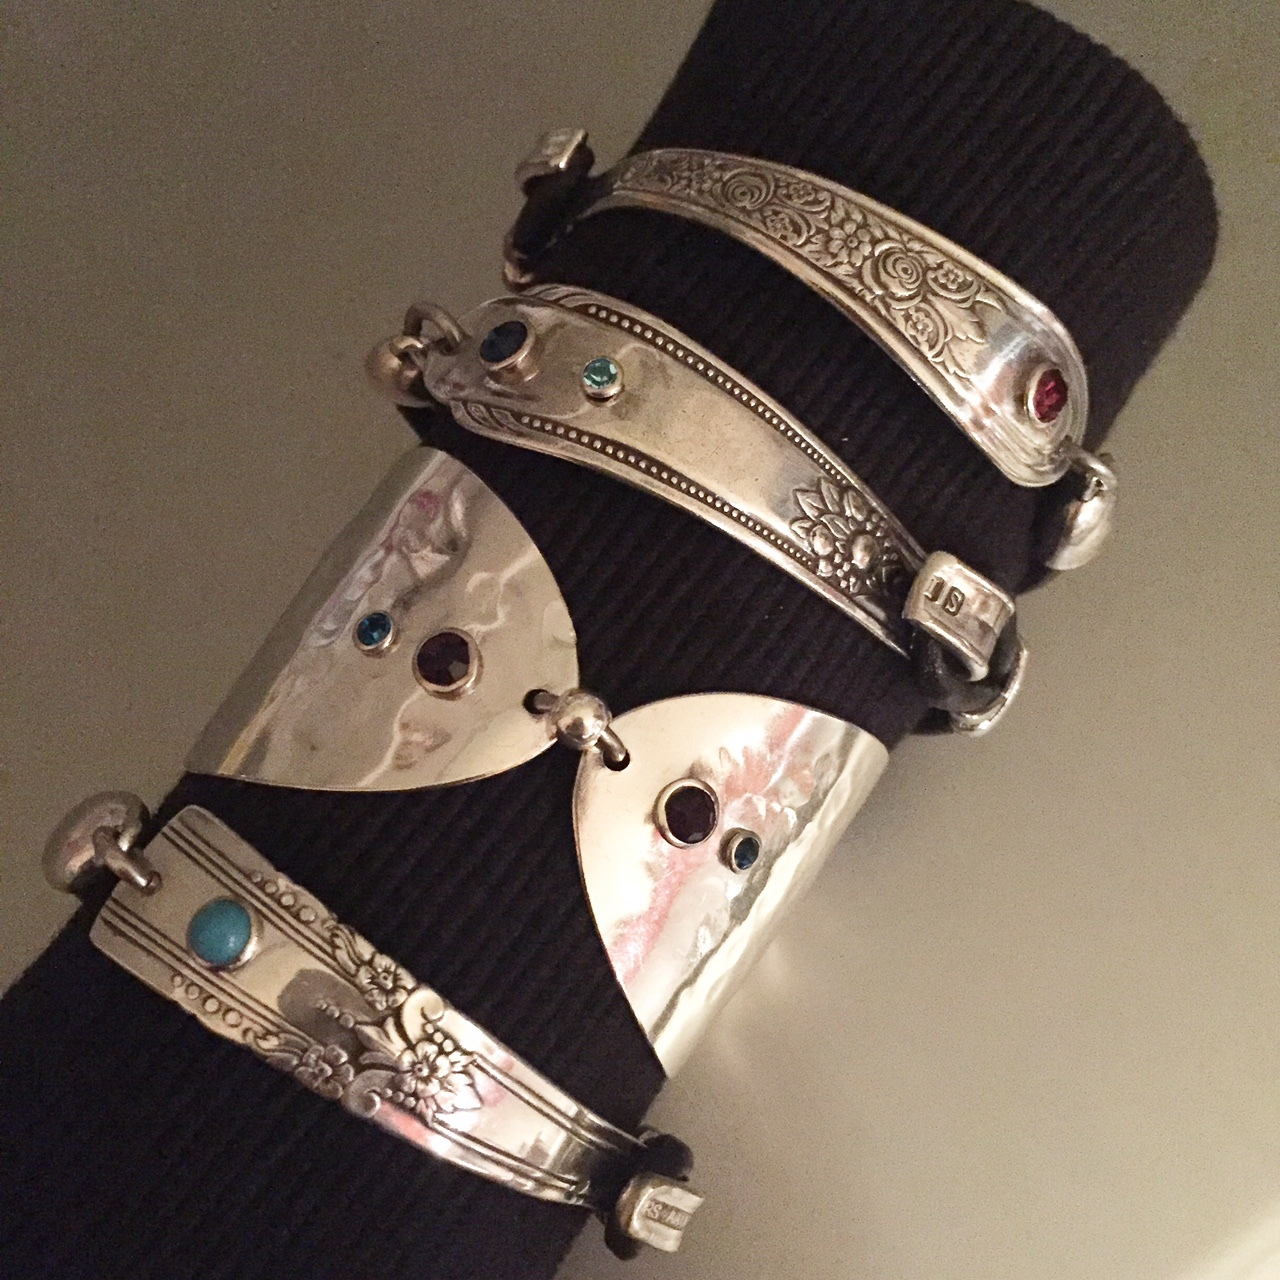 Hook and Leather Bracelets